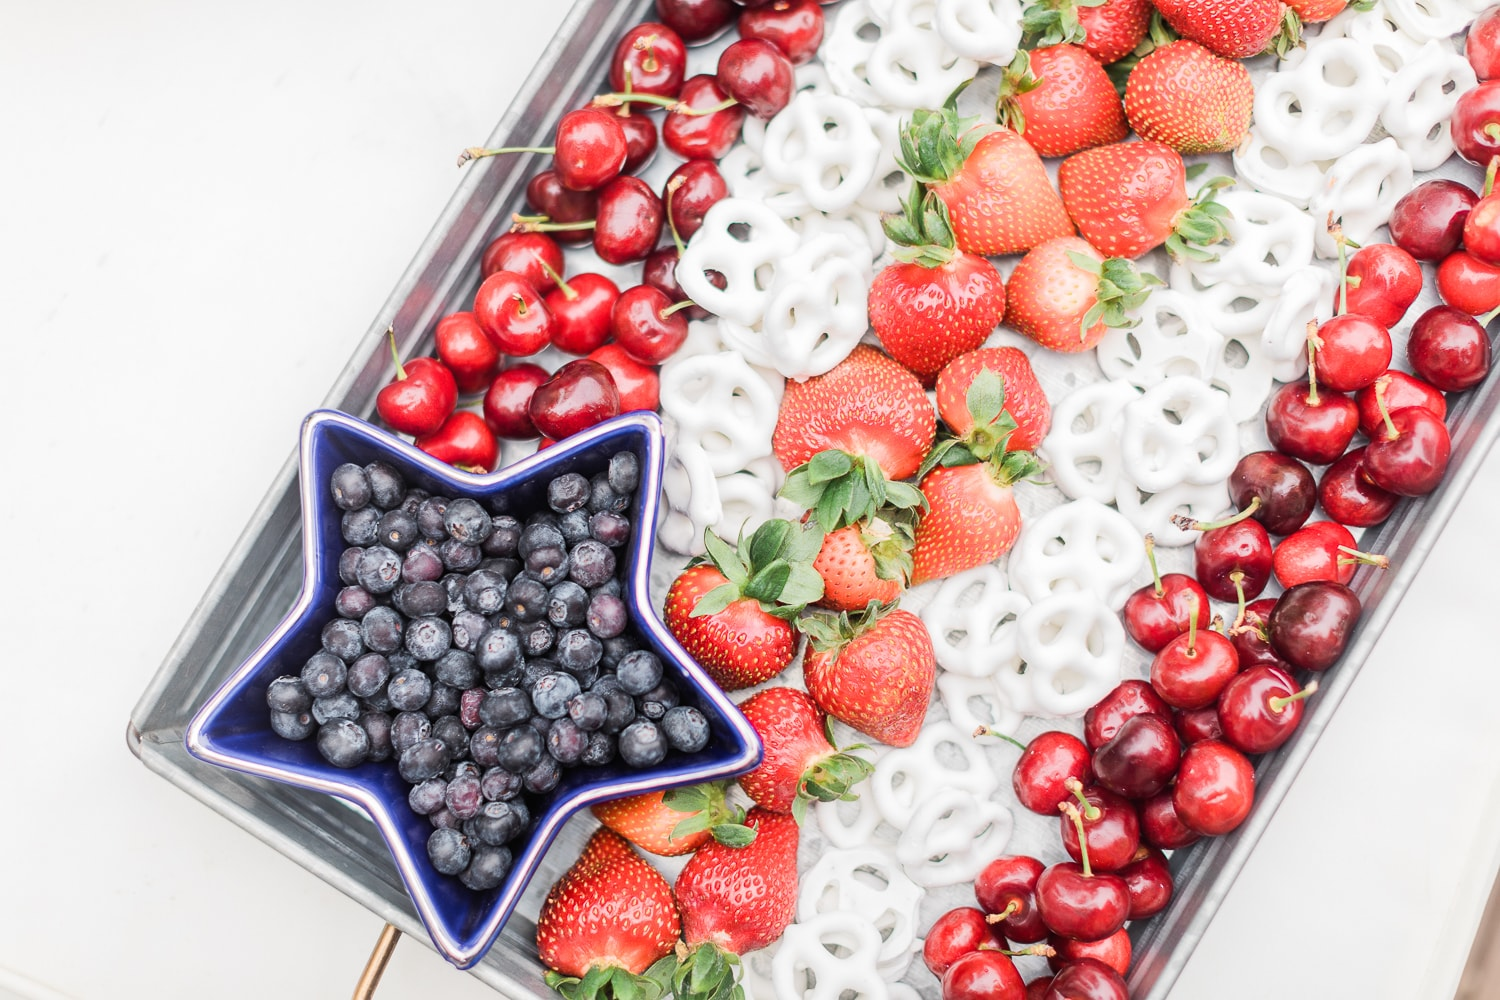 Patriotic red white and blue snack tray created by blogger Stephanie Ziajka on Diary of a Debutante